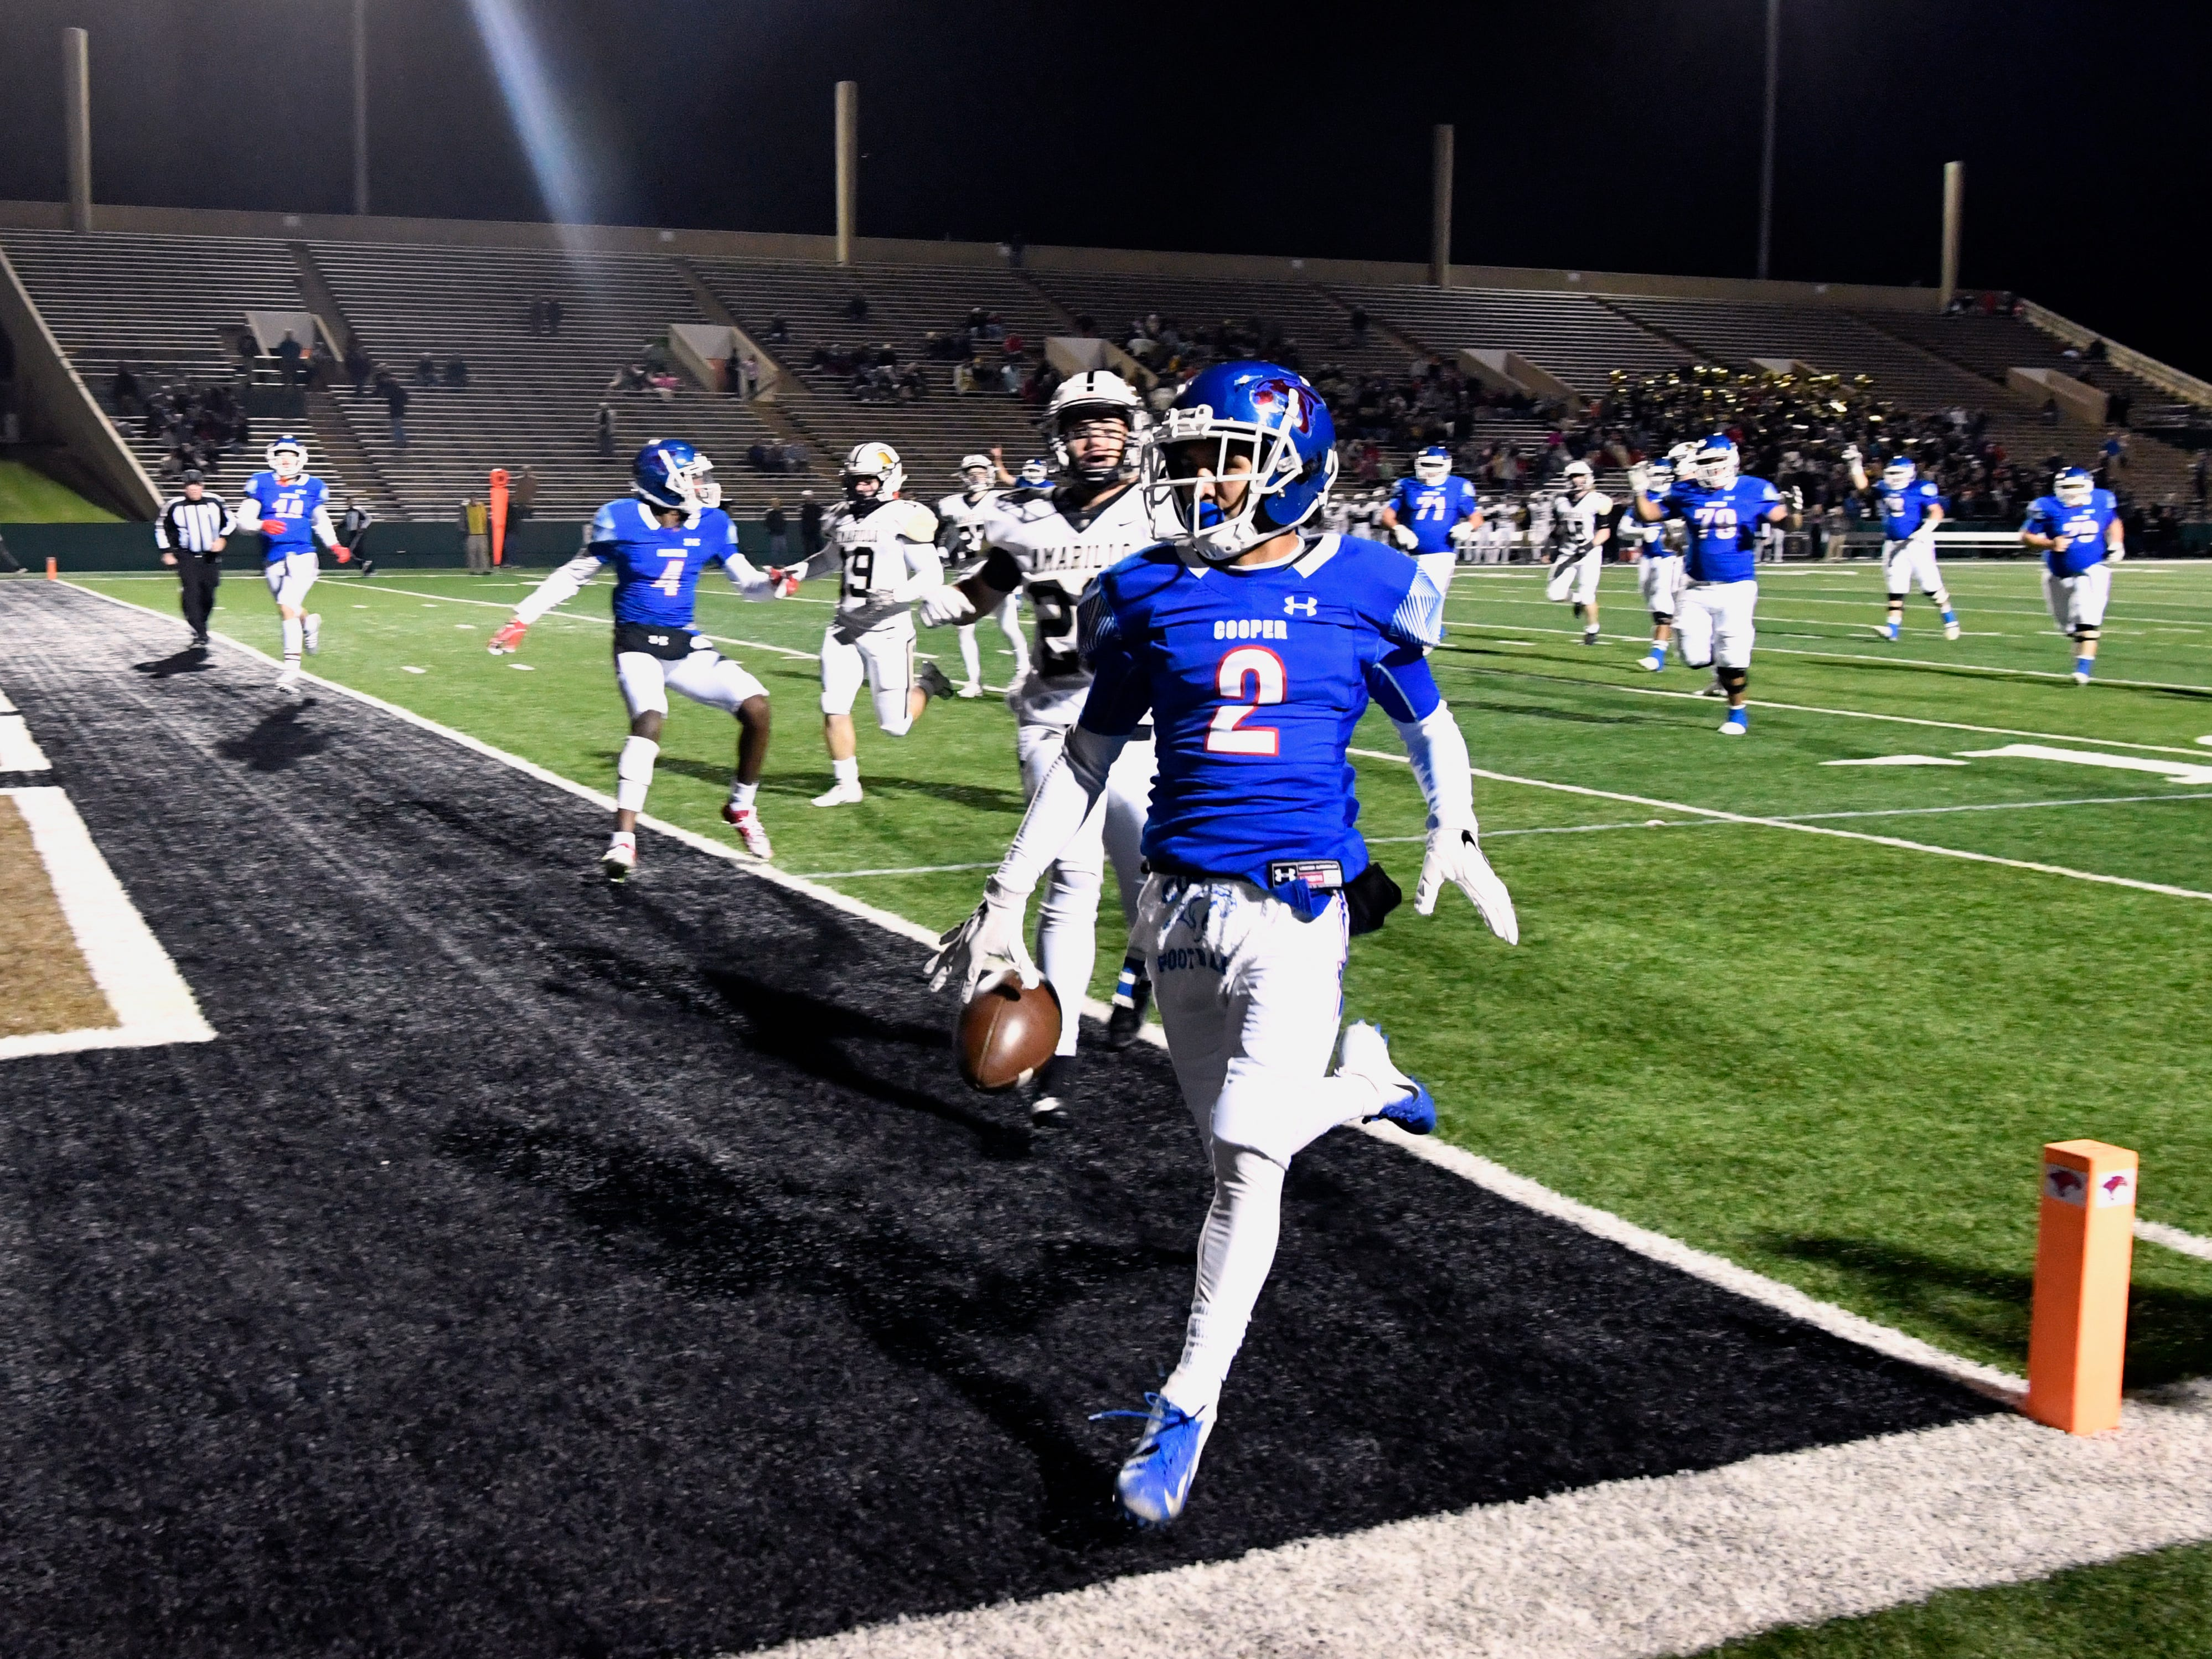 Cooper High School wide receiver Daelin Campos runs the ball in for a touchdown against Amarillo during the first few minutes of Friday's game Nov. 9, 2018.